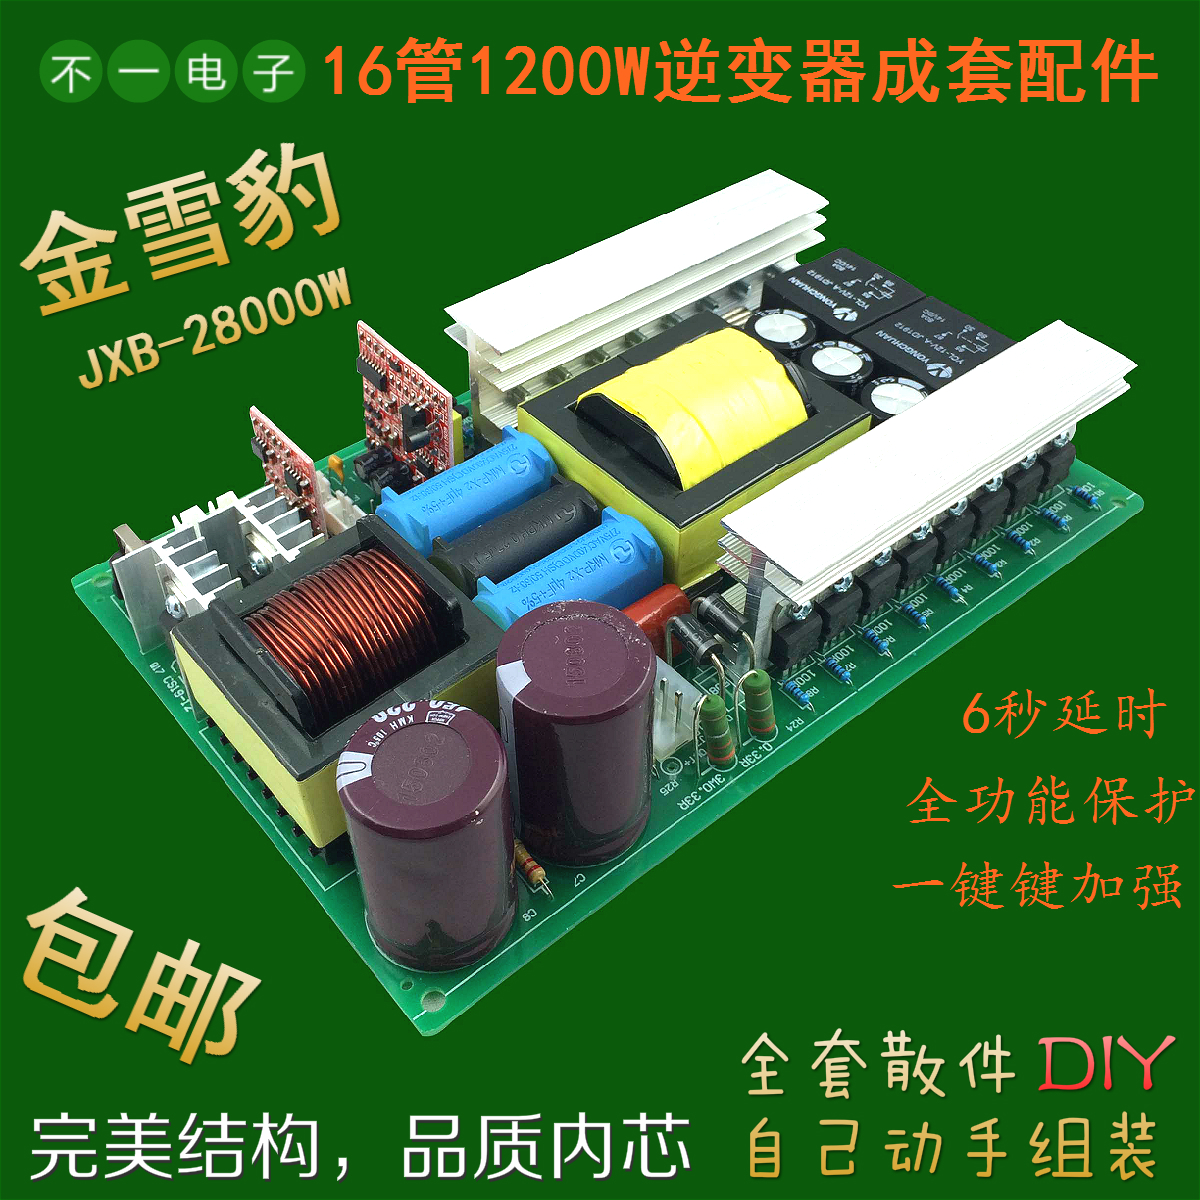 Inverter starting suite 12V electronic nose bulk, high power booster DIY16 tube cxa l0612 vjl cxa l0612a vjl vml cxa l0612a vsl high pressure plate inverter